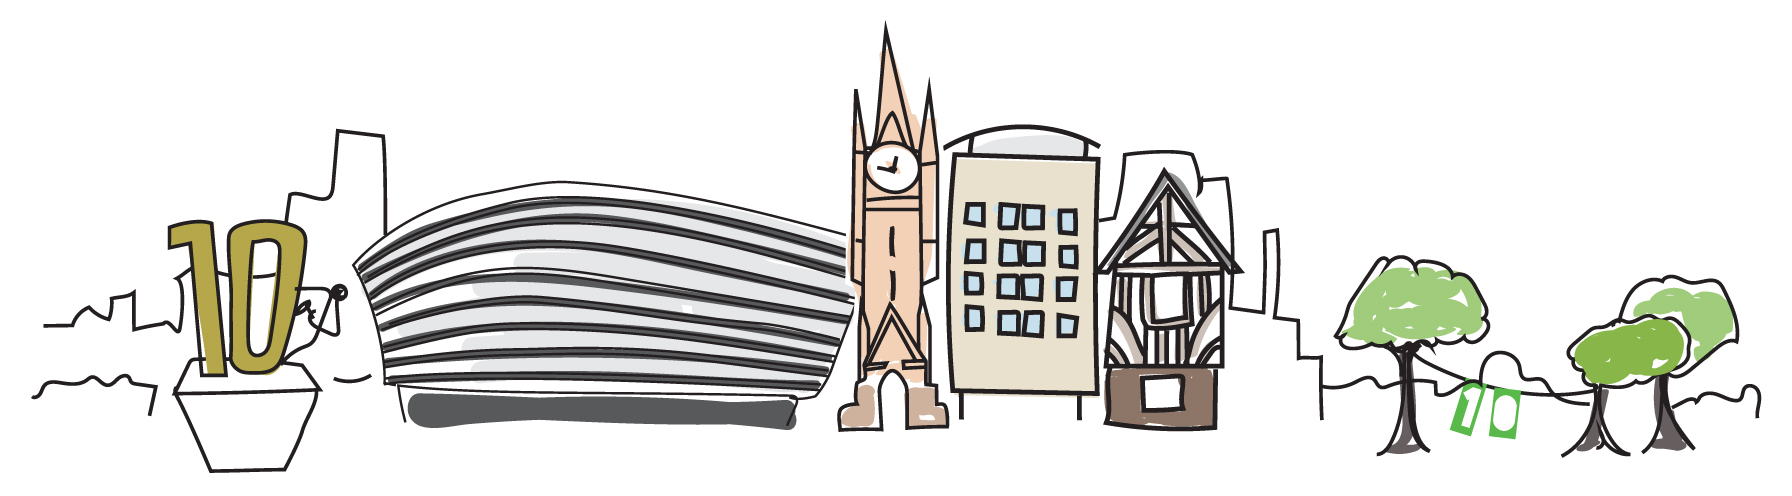 Creative Calling Leicestershire illustration showing landmarks from the area.